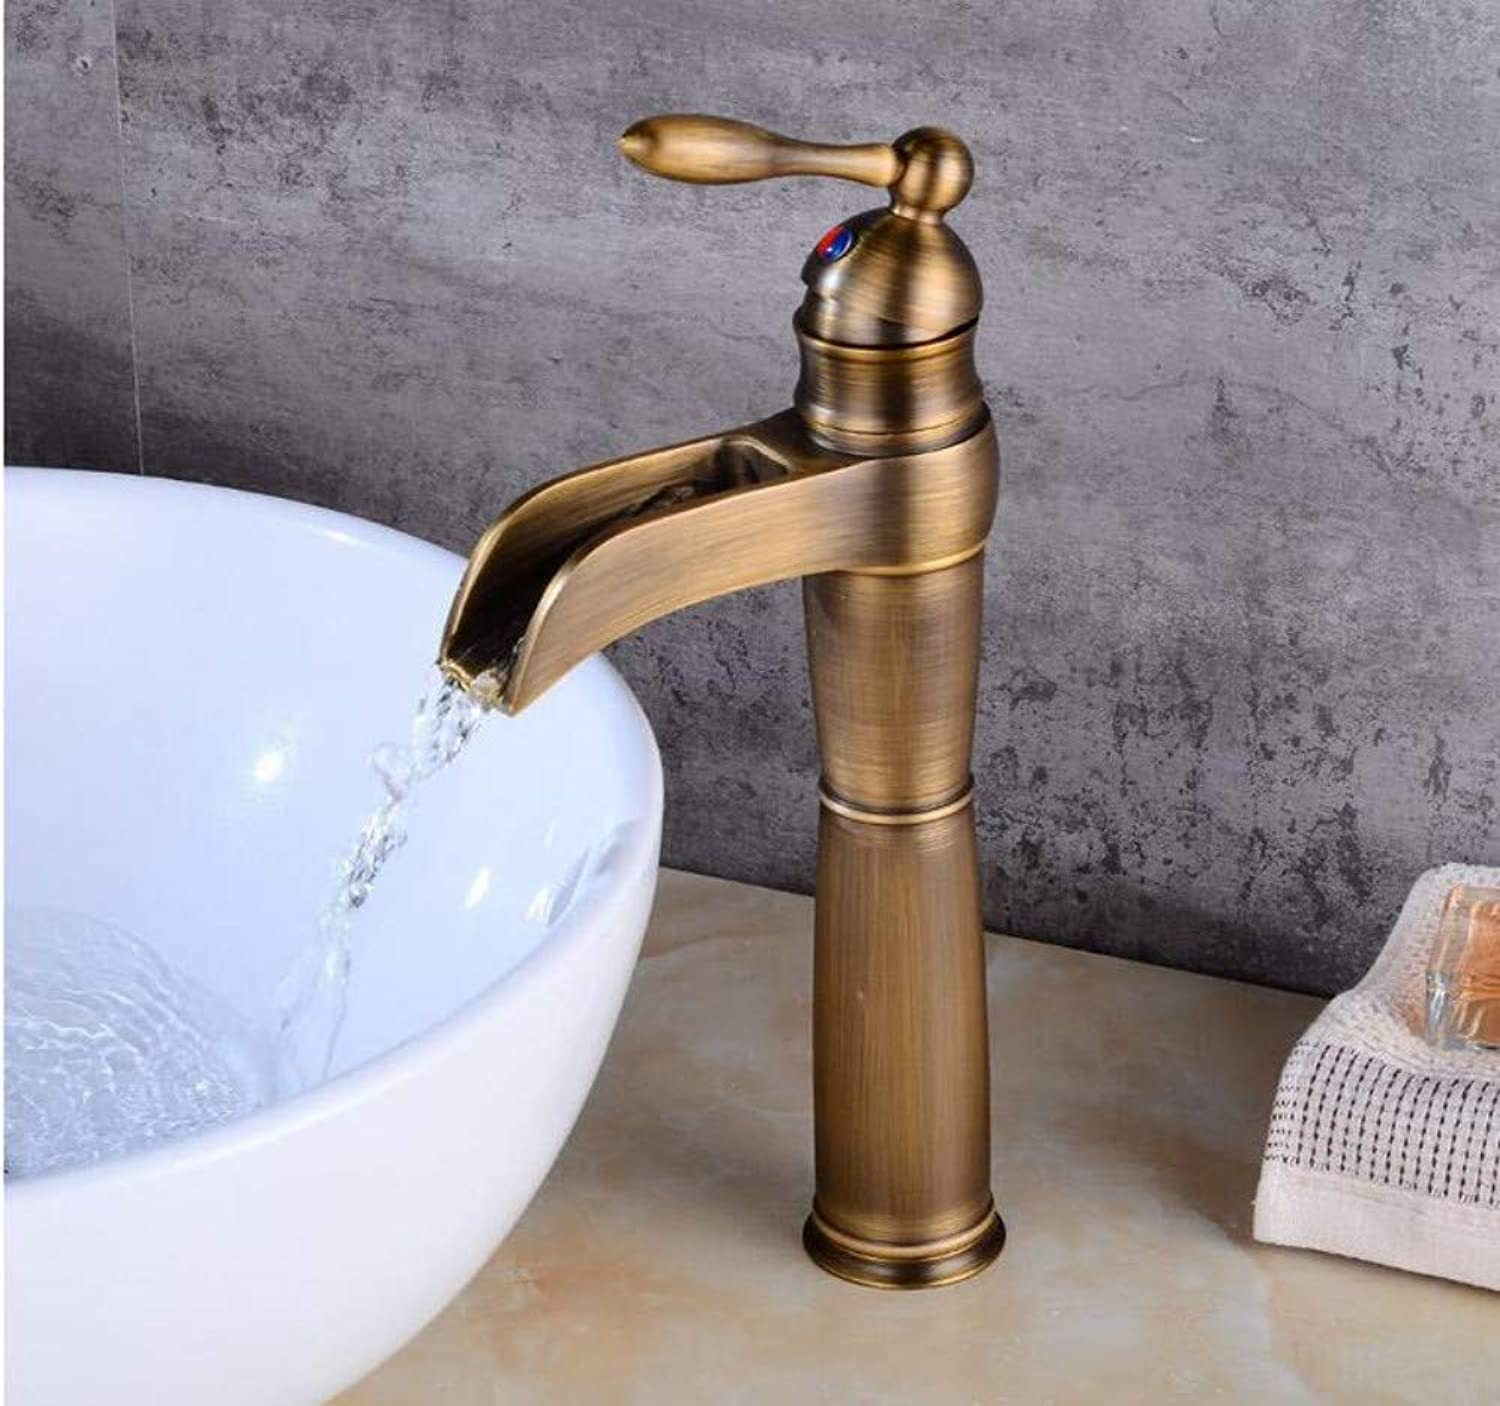 Luxury Modern Faucet Copper Hot and Cold Kitchen Sink Taps Kitchen Faucet Bathroom Antique Waterfall Faucet